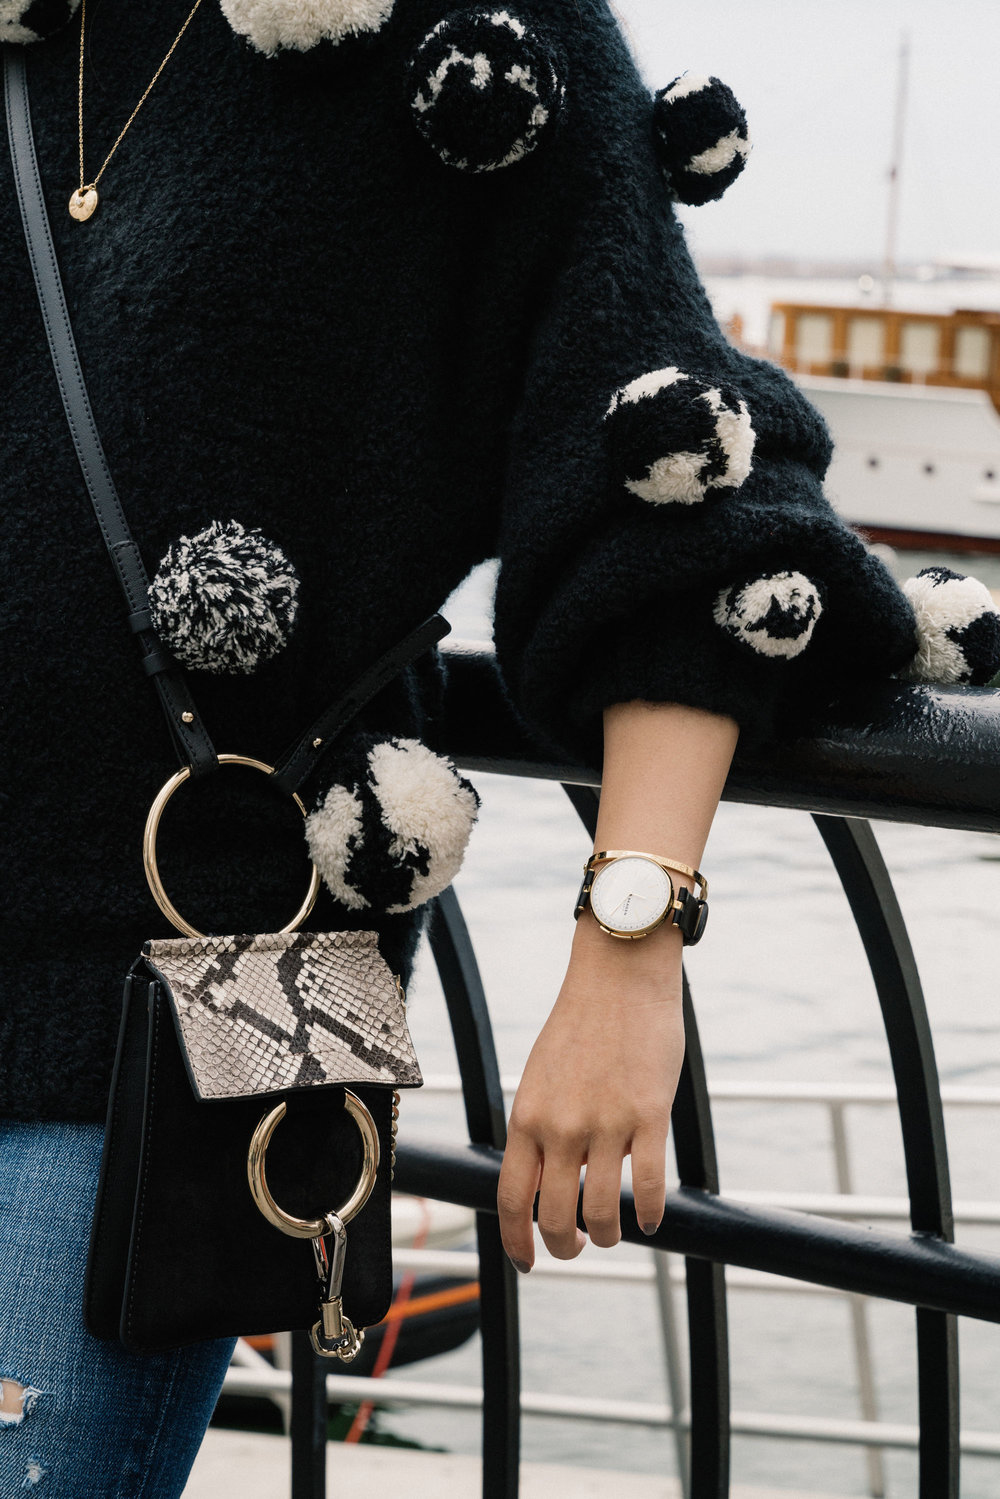 Spencer Vladimir Sweater,  Moussy Denim , Chloé Bag,  Skagen Watch ,  Cartier Bracelet